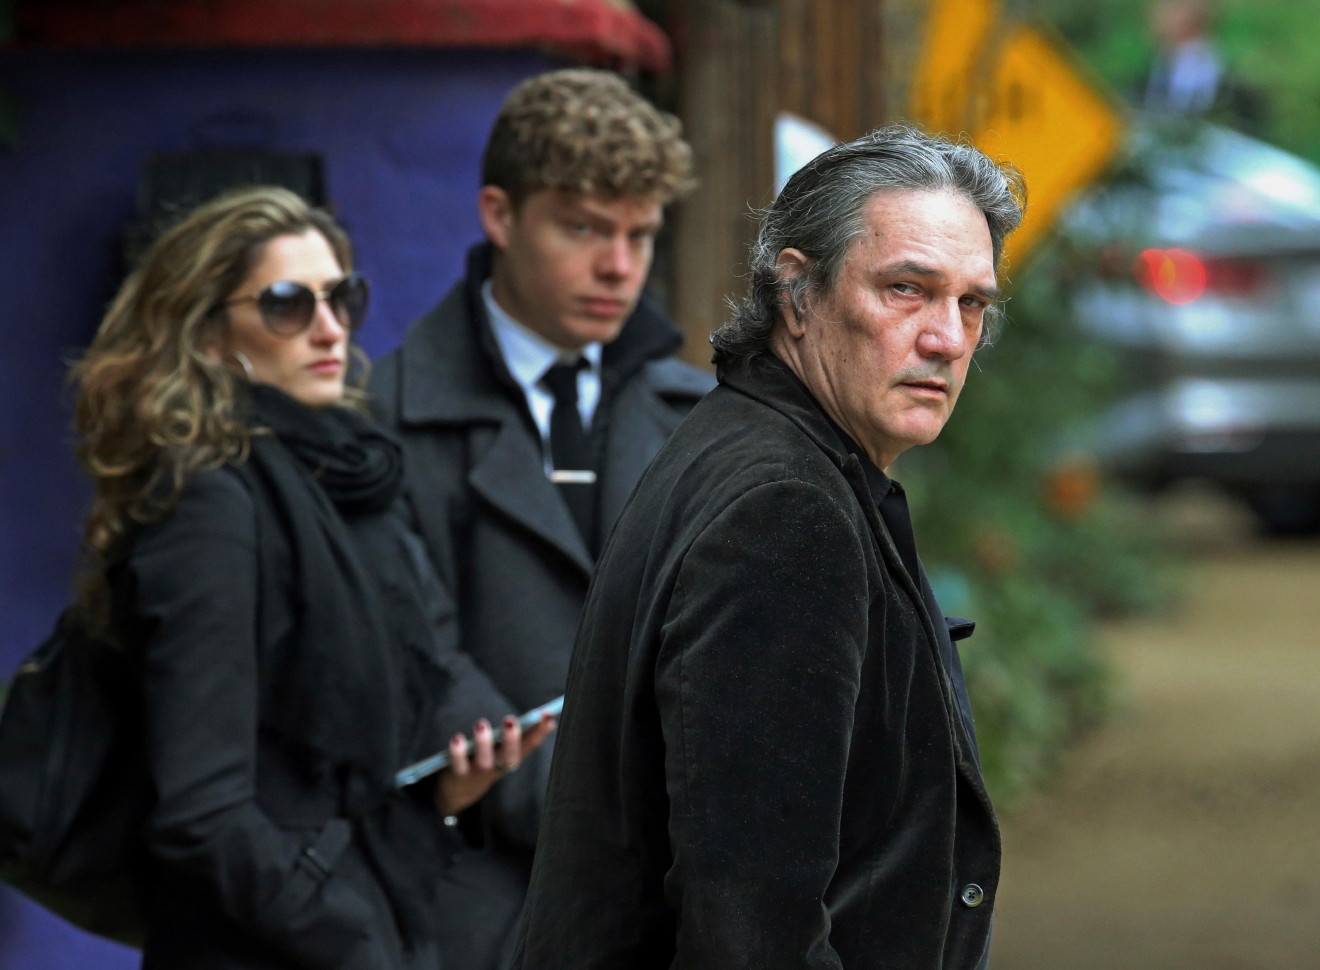 A man, center checks guests in as they arrive for a memorial service at the homes of Debbie Reynolds and Carrie Fisher in Los Angeles on Thursday, Jan. 5, 2017. A procession of stars arrived at the next door homes of Reynolds and her daughter Fisher on a gloomy Thursday afternoon amid reports that the private memorial was scheduled at the compound to mourn the late actresses. (AP Photo/Reed Saxon)